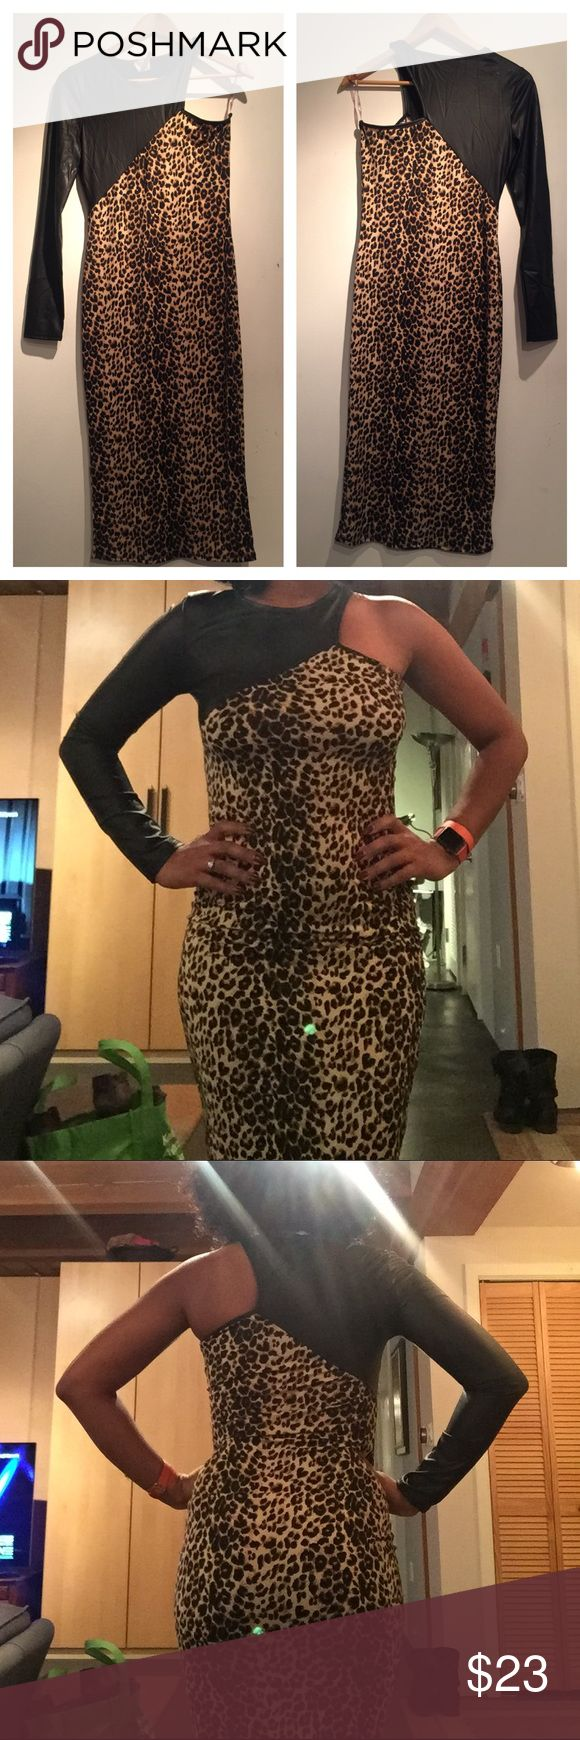 """Sexy One-Shoulder Animal Print Dress This dress drips with """"modest"""" sexiness. I've only worn this dress once for a party that took place during a cold December. You're bound to receive a ton of compliments in this dress. It's  tea-length with 95% polyester and 5% spandex. Excellent condition. Dresses One Shoulder"""